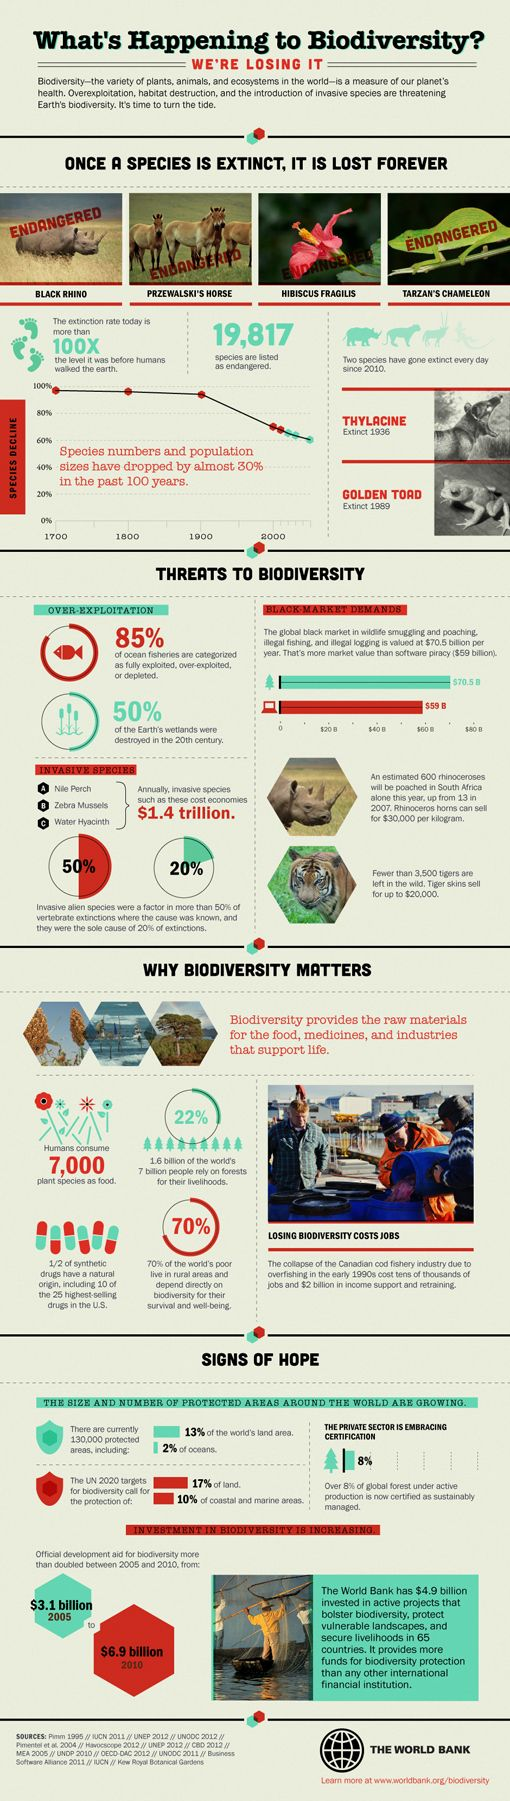 ¿Qué está pasando con la biodiversidad? Internet Site, Biodiversity, Eco Infographic, Endangered Species,  Website, Web Site, Happen, Science, Animal